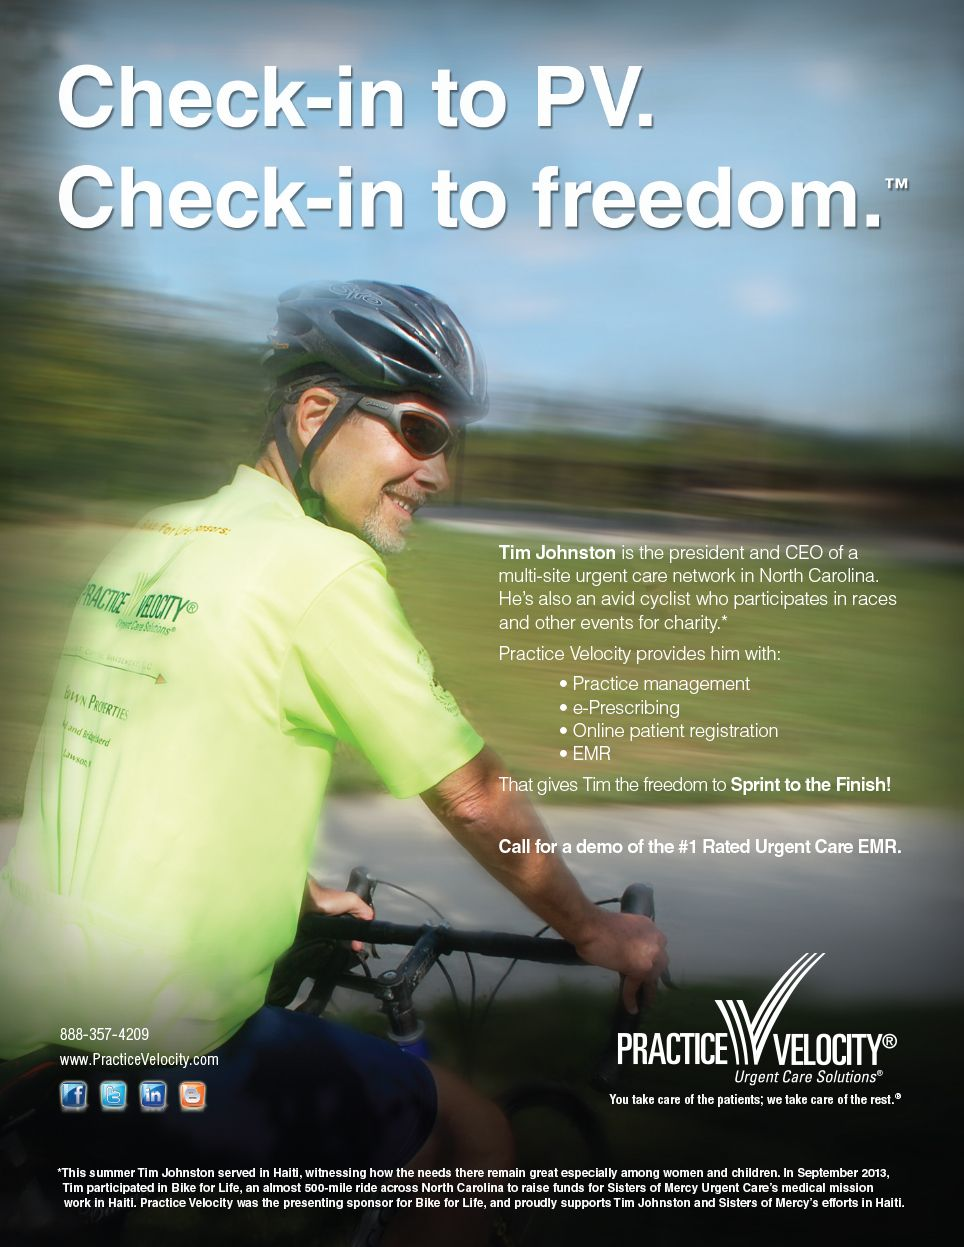 Practice Velocity ad for October 2013 features Tim